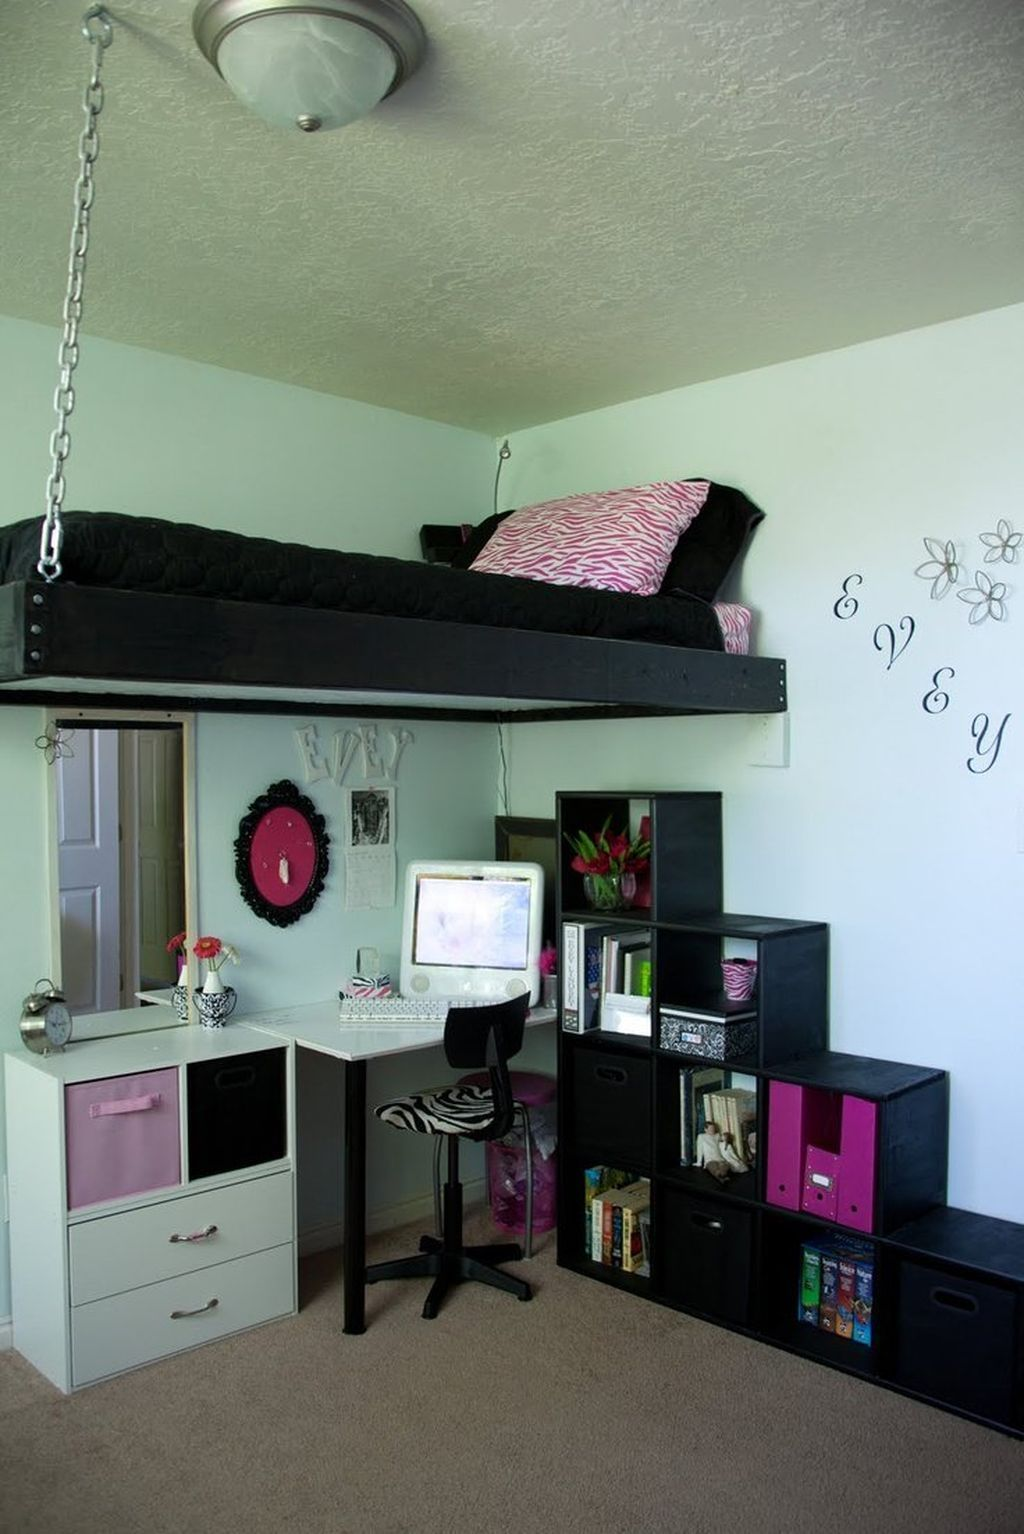 Loft bedroom ideas for boys   Cool and Cute Kids Bedroom Ideas for Boys  Bedrooms Room and